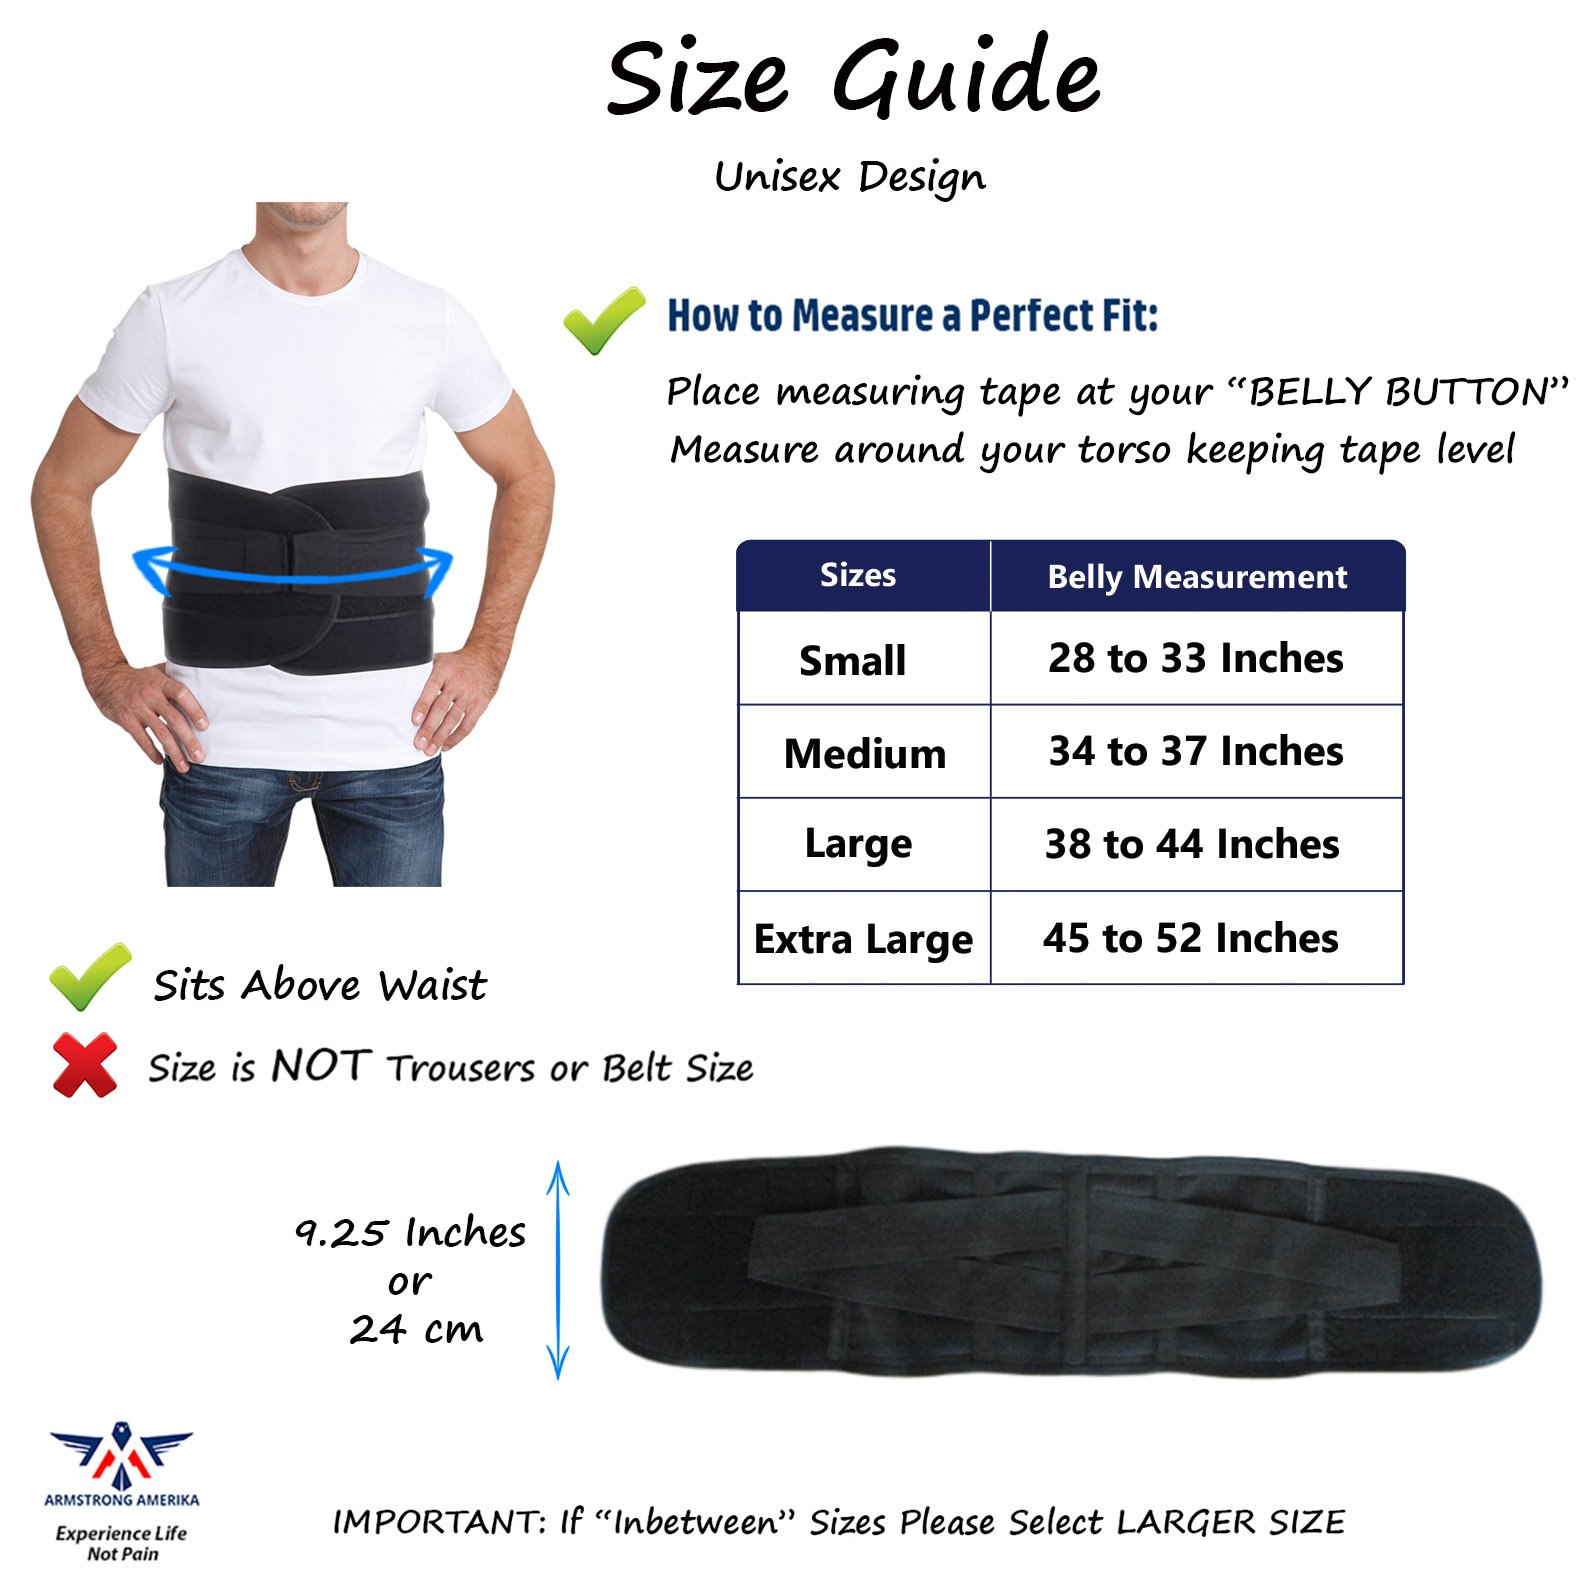 Back Brace for Lower Back Pain – Comfortable Lumbar Support Belt for Weight Lifting and Low Spine Stabilizer for Sciatica Nerve Relief or Scoliosis. Compression for Bulging Herniated Disc (Medium) by ARMSTRONG AMERIKA (Image #6)